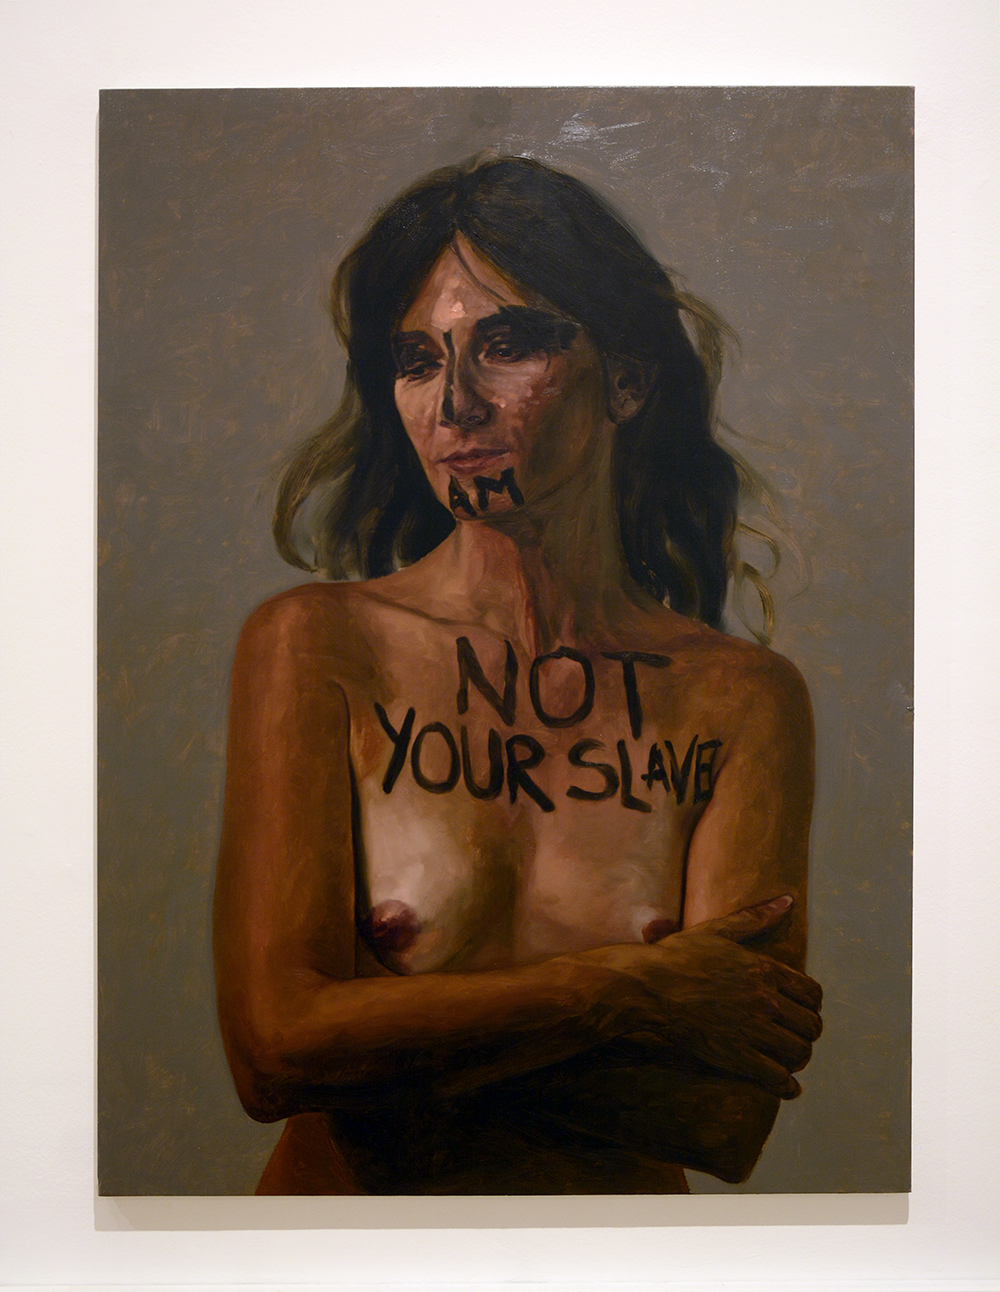 I am not your slave / oil on linen / 150 x 110 cm / 2016